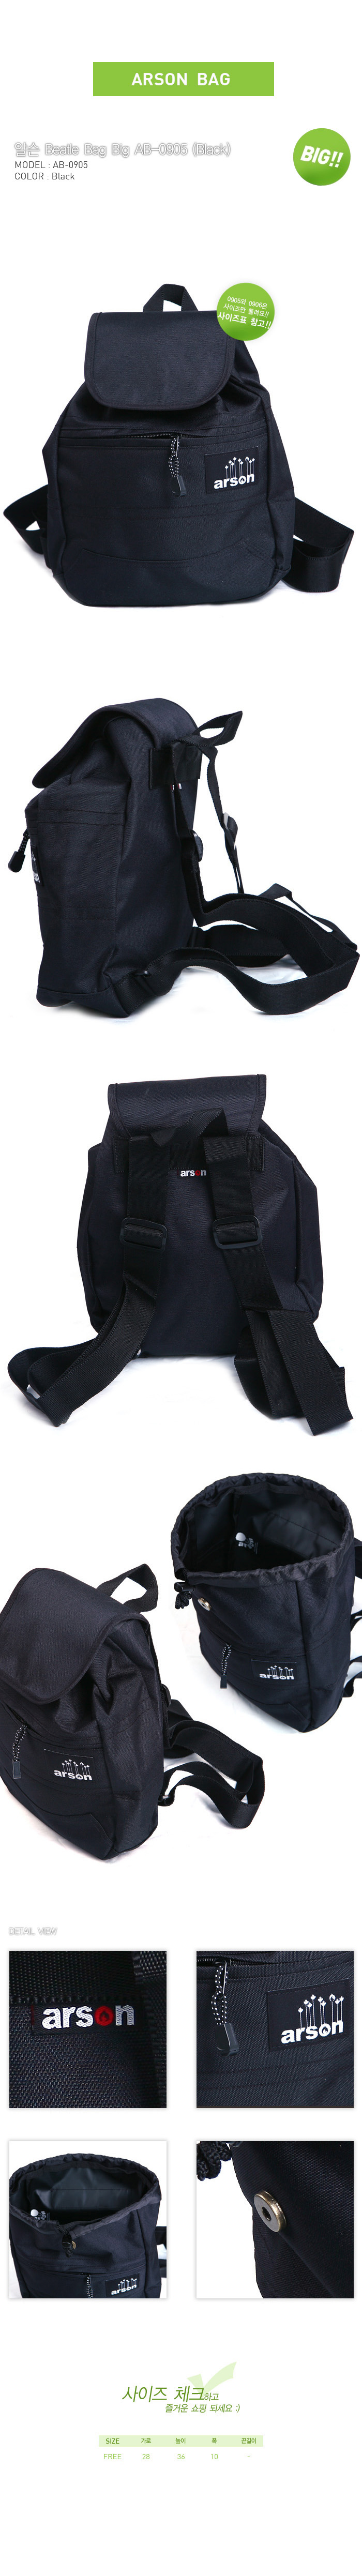 [ ARSON ] AB-0905 (Black)/Backpack School Bag